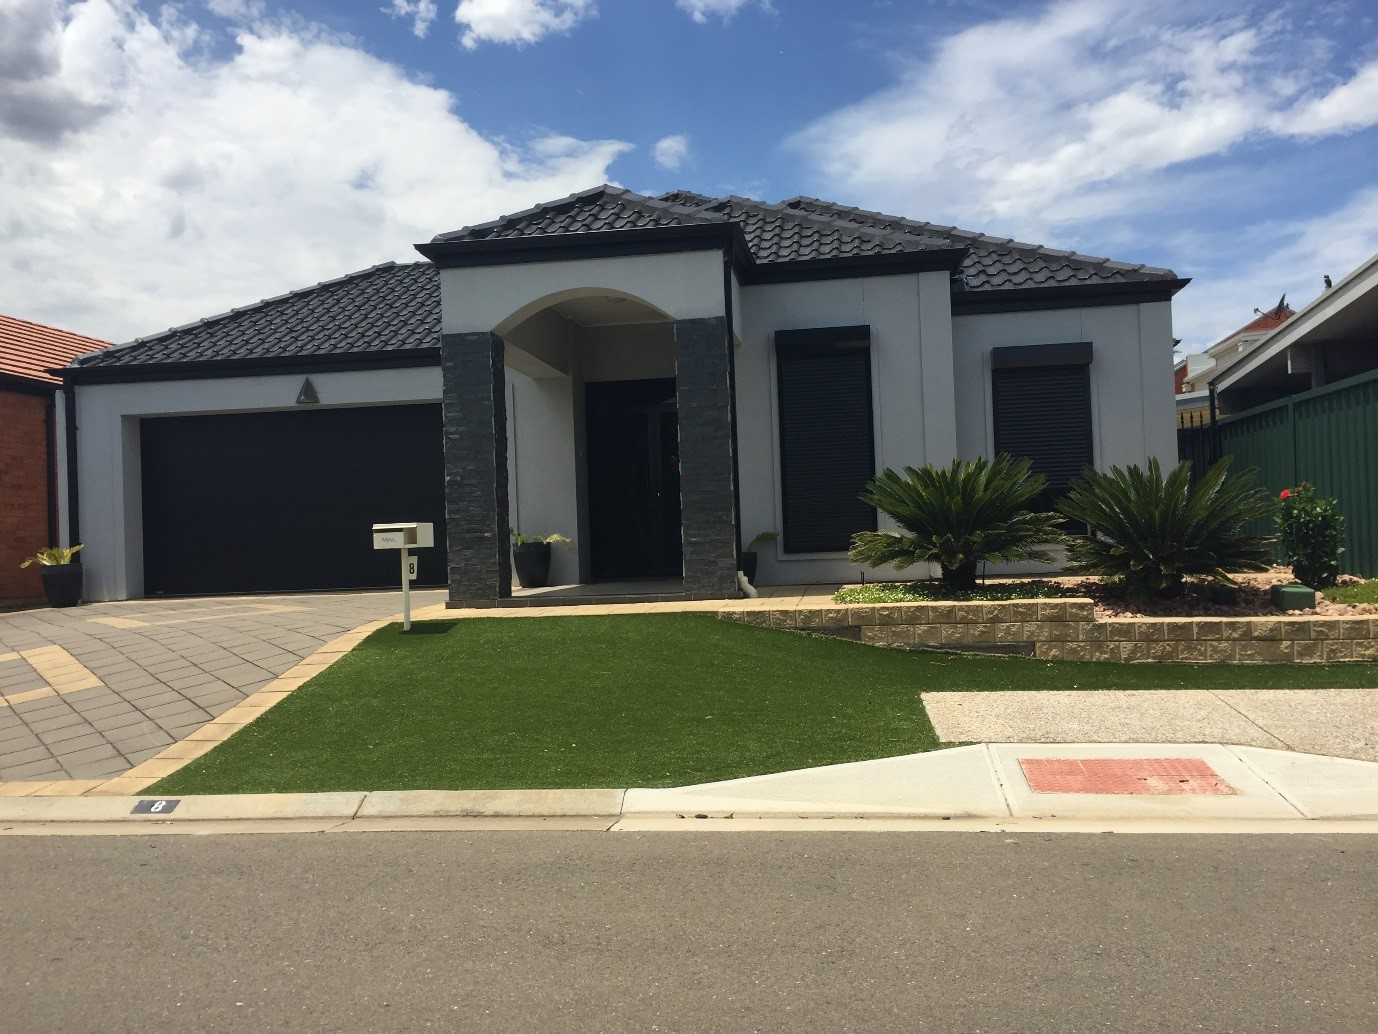 What Is The Cost Of Roller Shutters Roller Shutters Adelaide